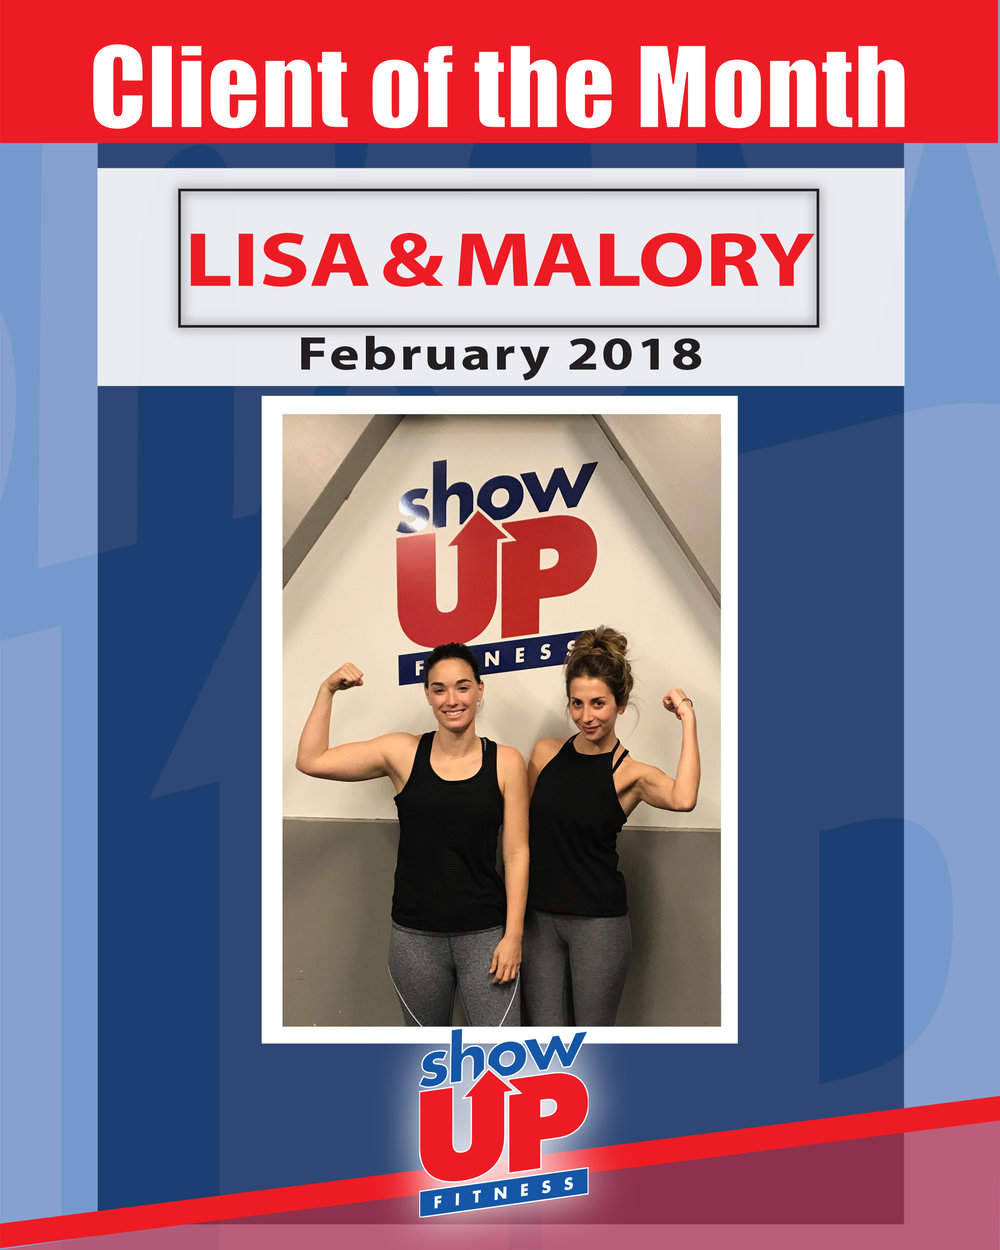 Lisa and Malory:  When we first came to Show Up Fitness in July of 2016, I was a big runner with a smaller frame. Bret helped us change our mindset by teaching how to lift weights properly and cut back on running. I still run, but I thought running was the best way to lose fat.I've put on solid muscle, and looked amazing for a wedding last year.Thanks guys!